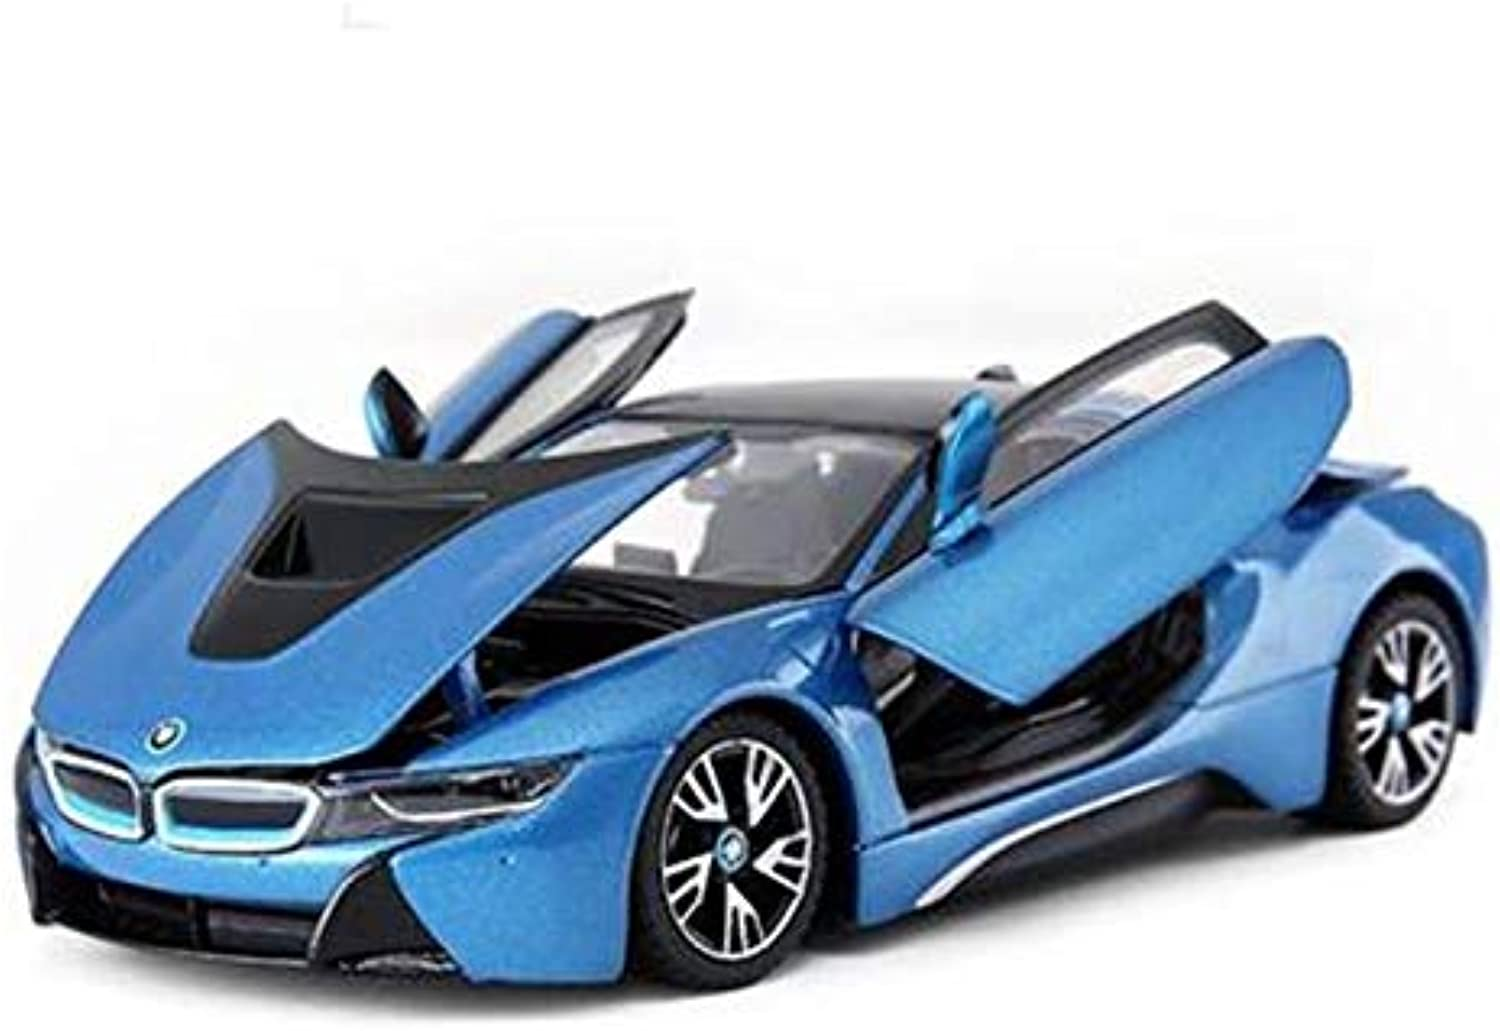 HBWJSH Alloy Car Static Model 1 24 Simulation Sports Car Car Collection Decoration Toy (color   bluee)